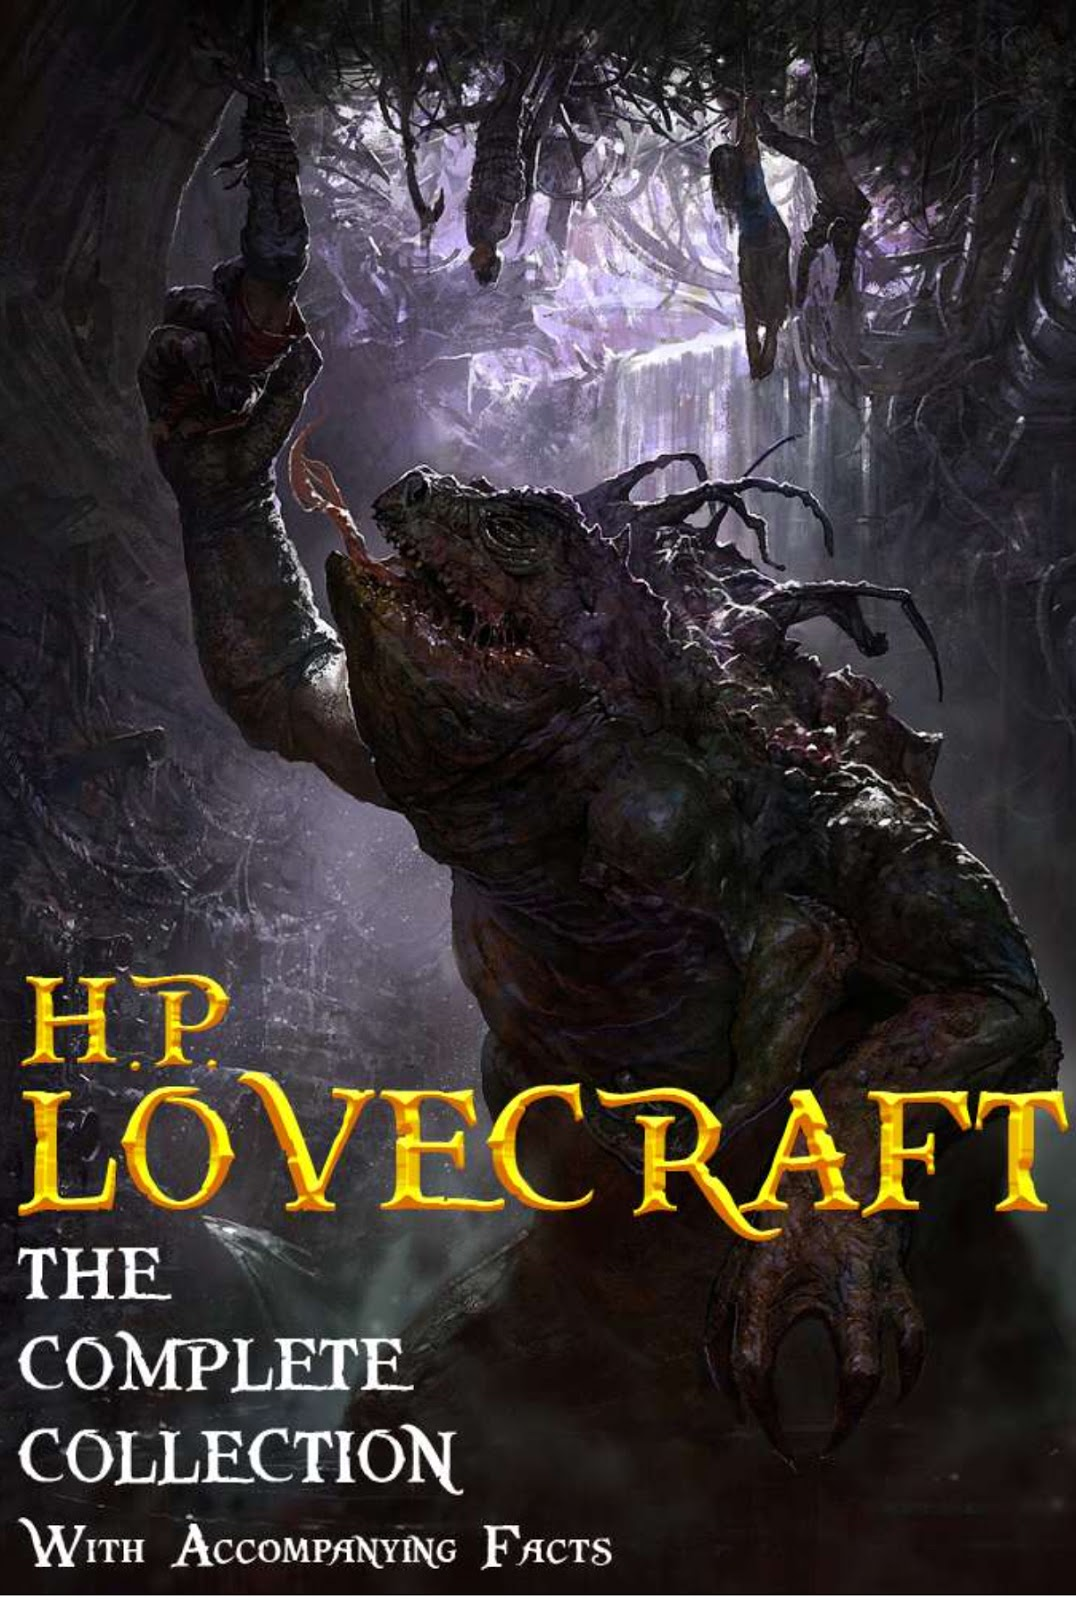 short story 366 the alchemist by h p lovecraft antoine lives in a decrepit castle and is the last of a long line of noblemen the castle is utter disrepair and has lived there alone for sixty years since